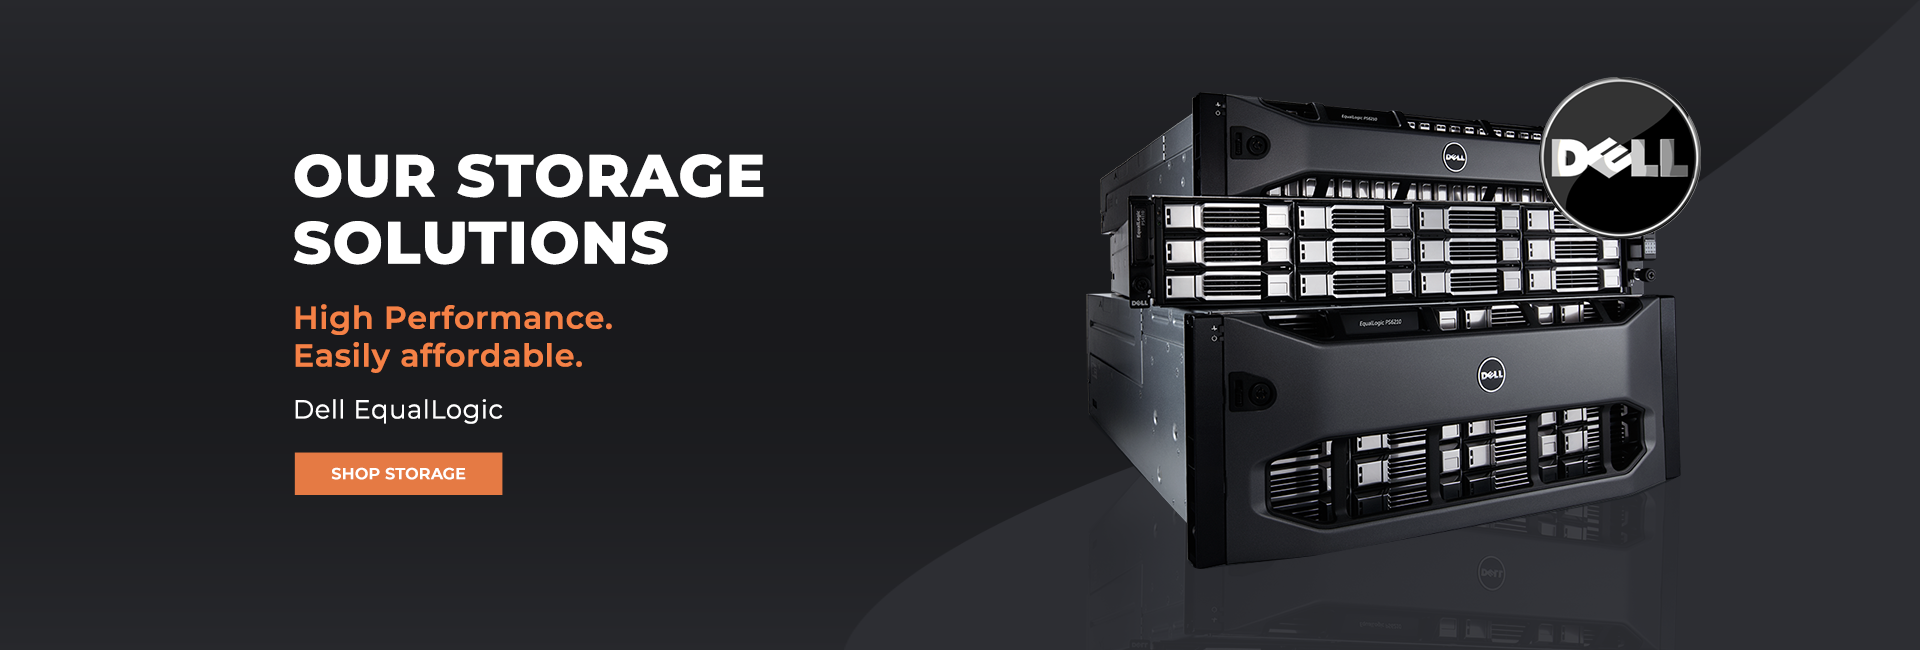 Dell EqualLogic Storage Banner